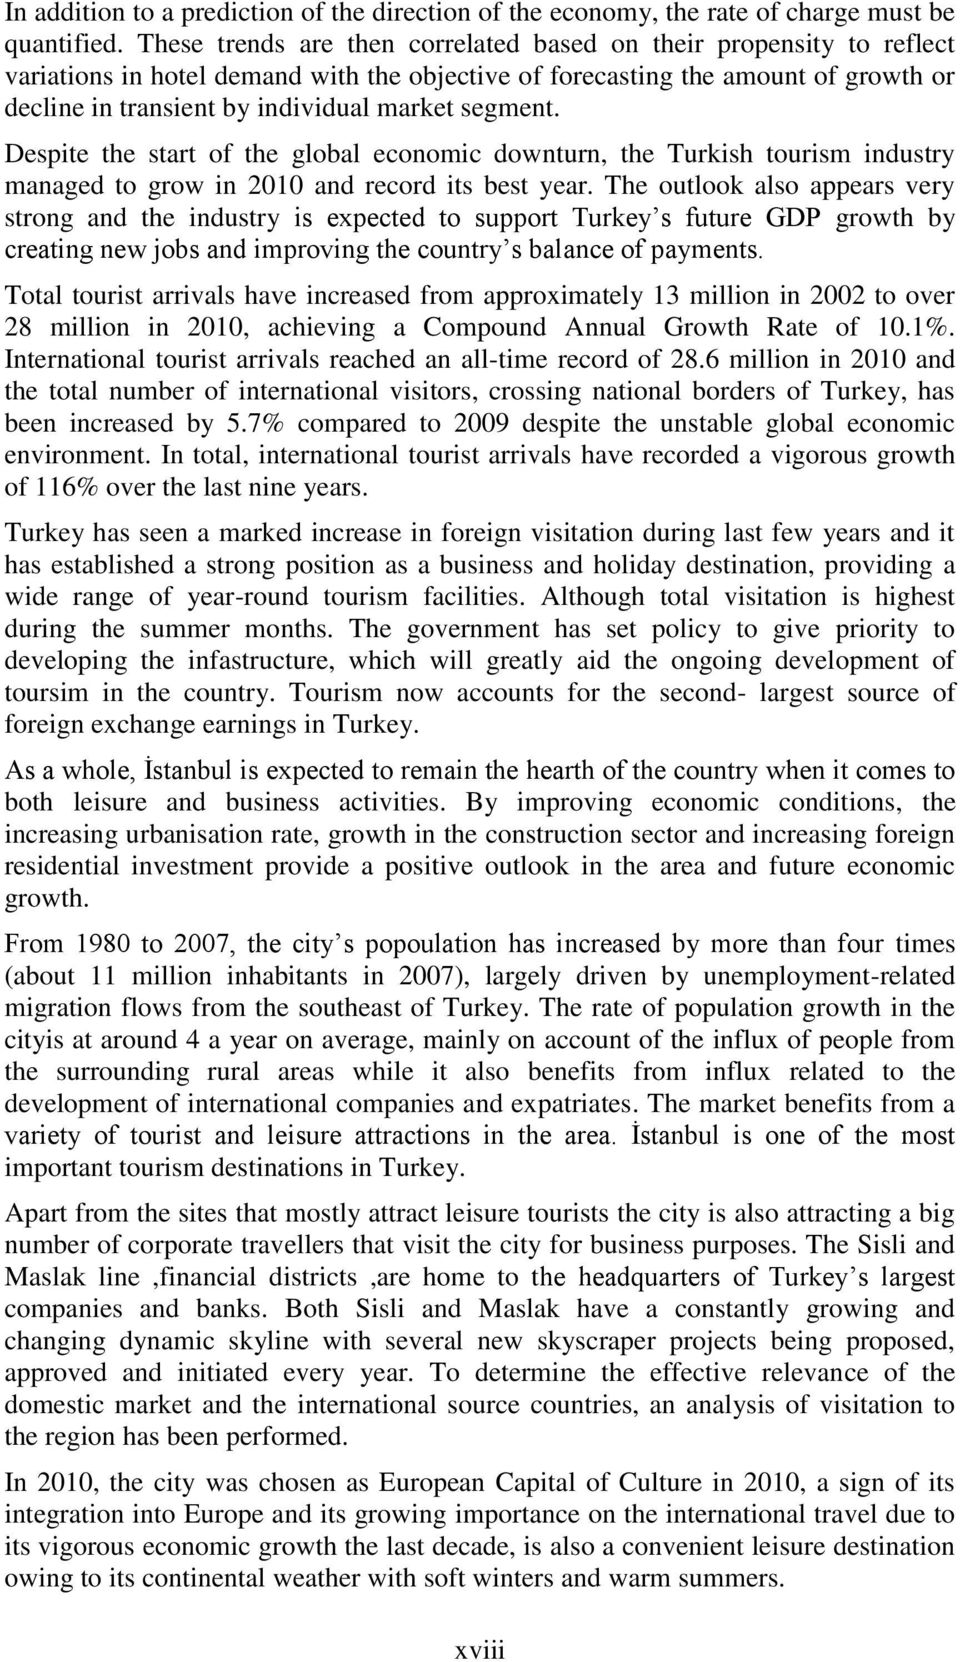 segment. Despite the start of the global economic downturn, the Turkish tourism industry managed to grow in 2010 and record its best year.